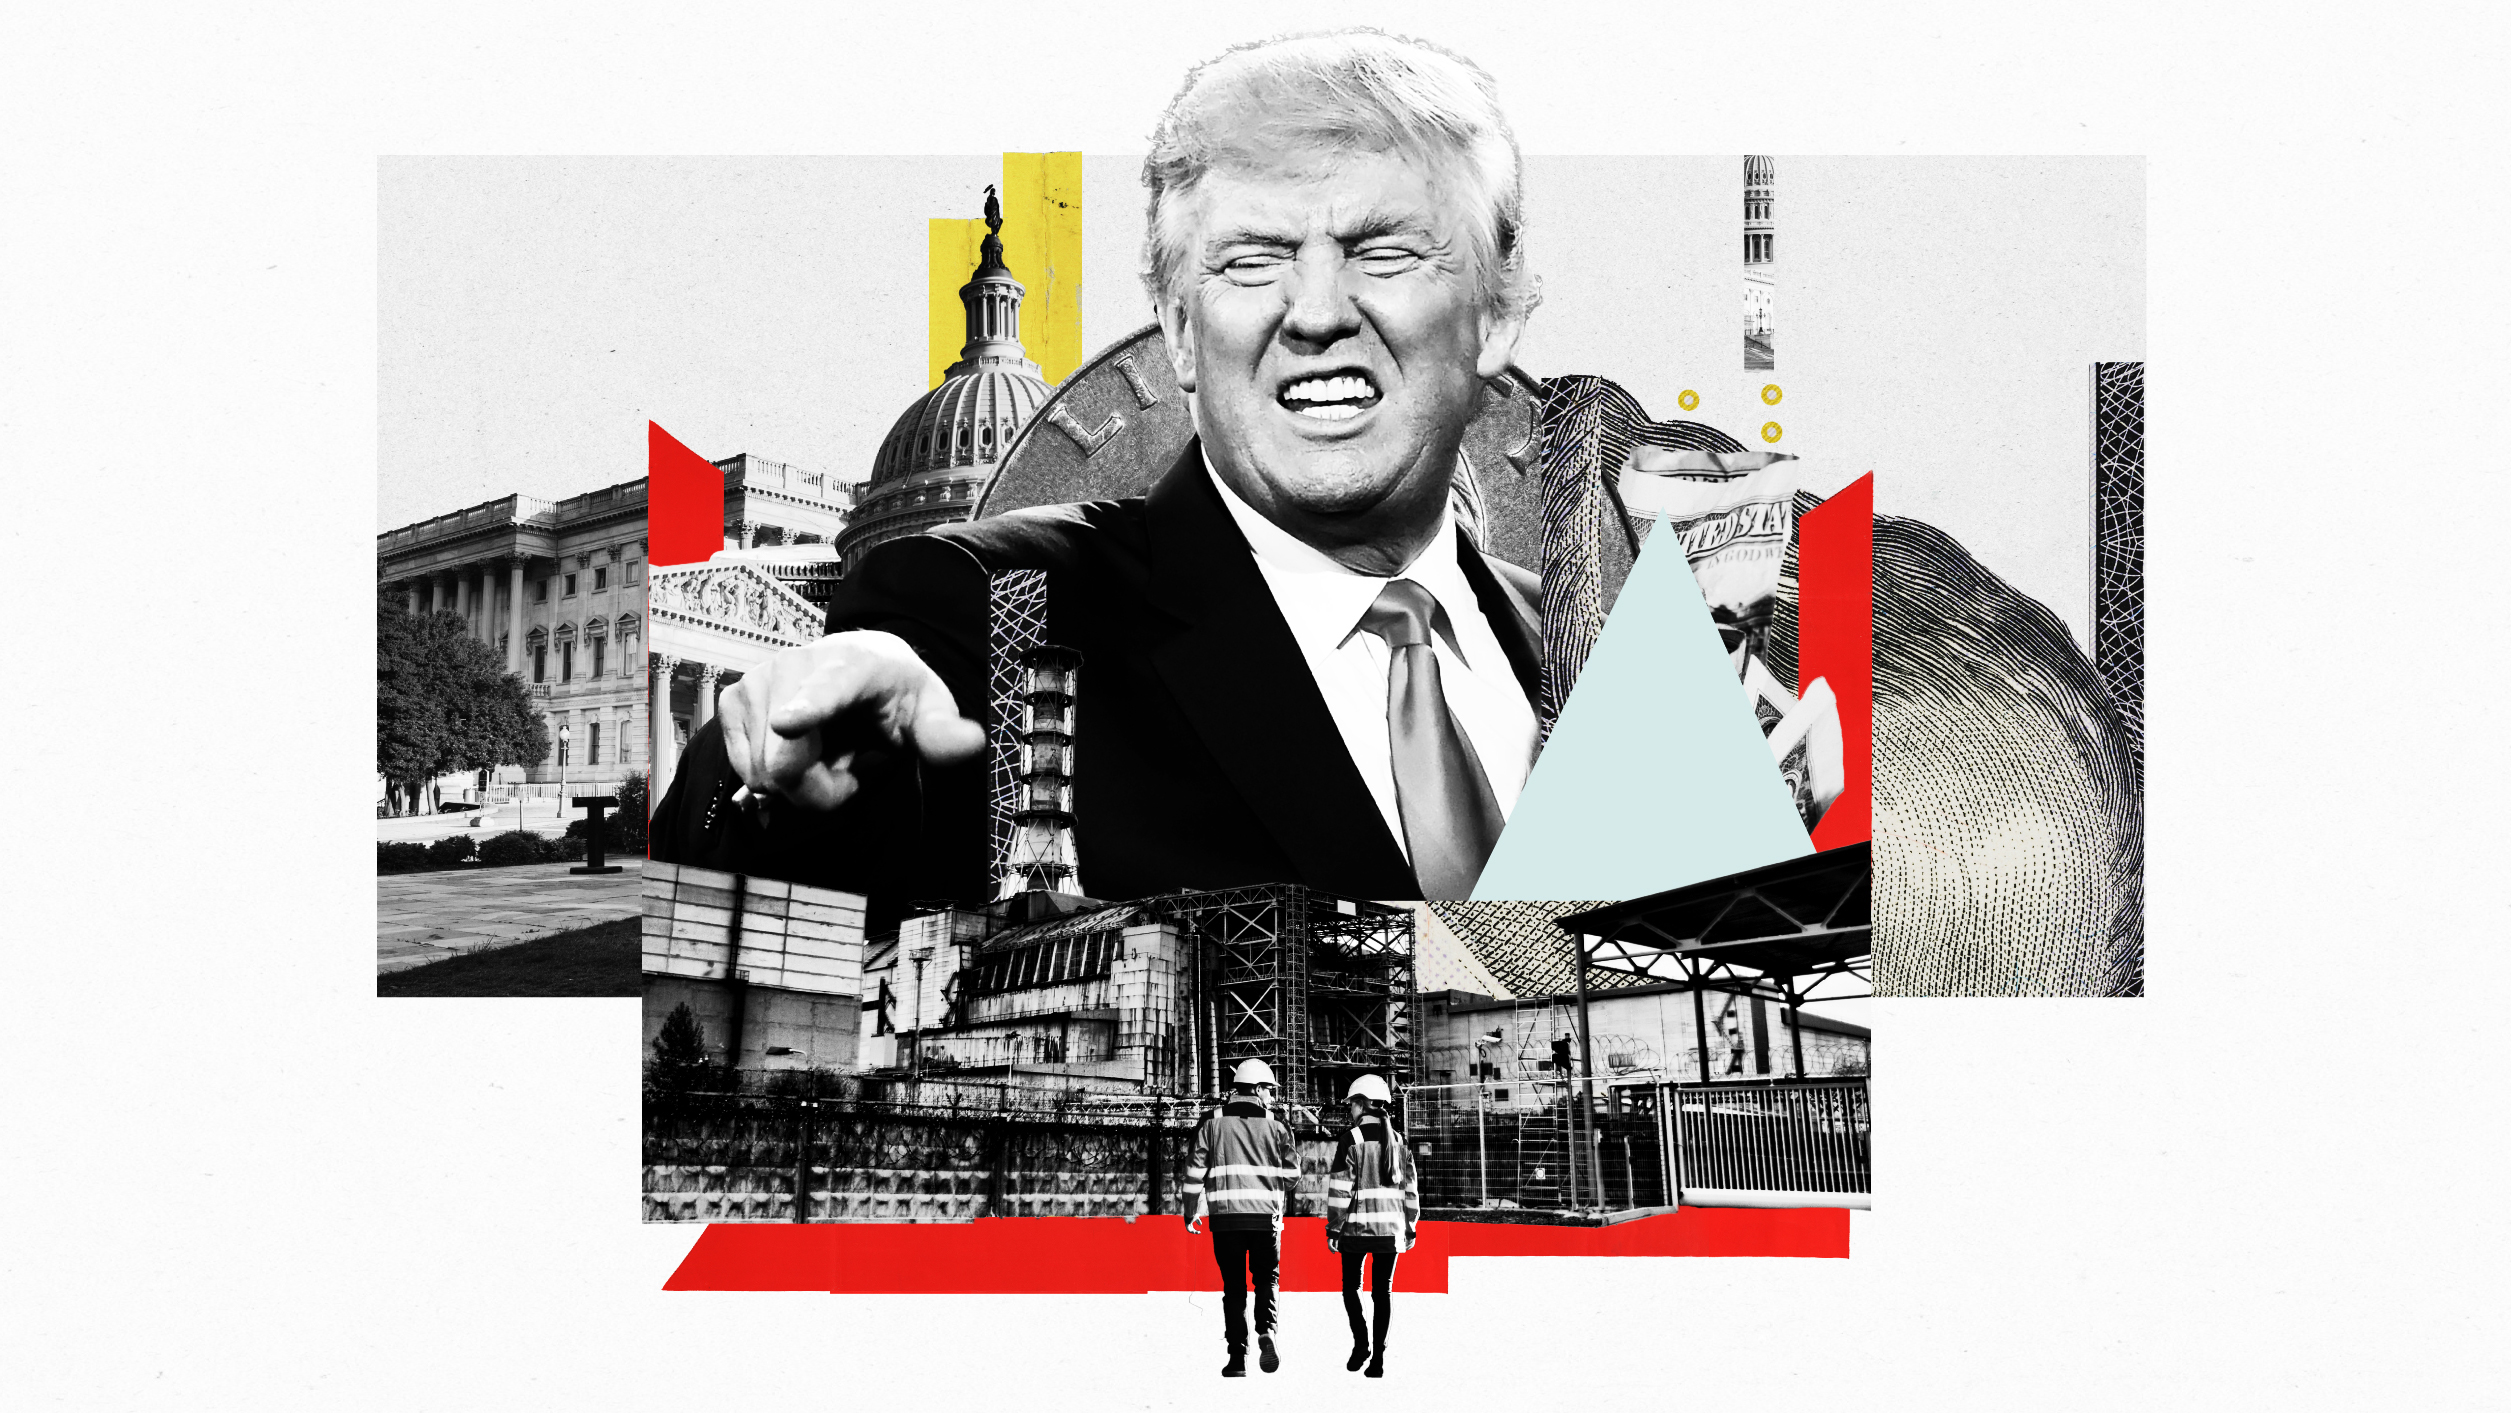 An illustration of Donald Trump, industrial workers,  and government buildings.